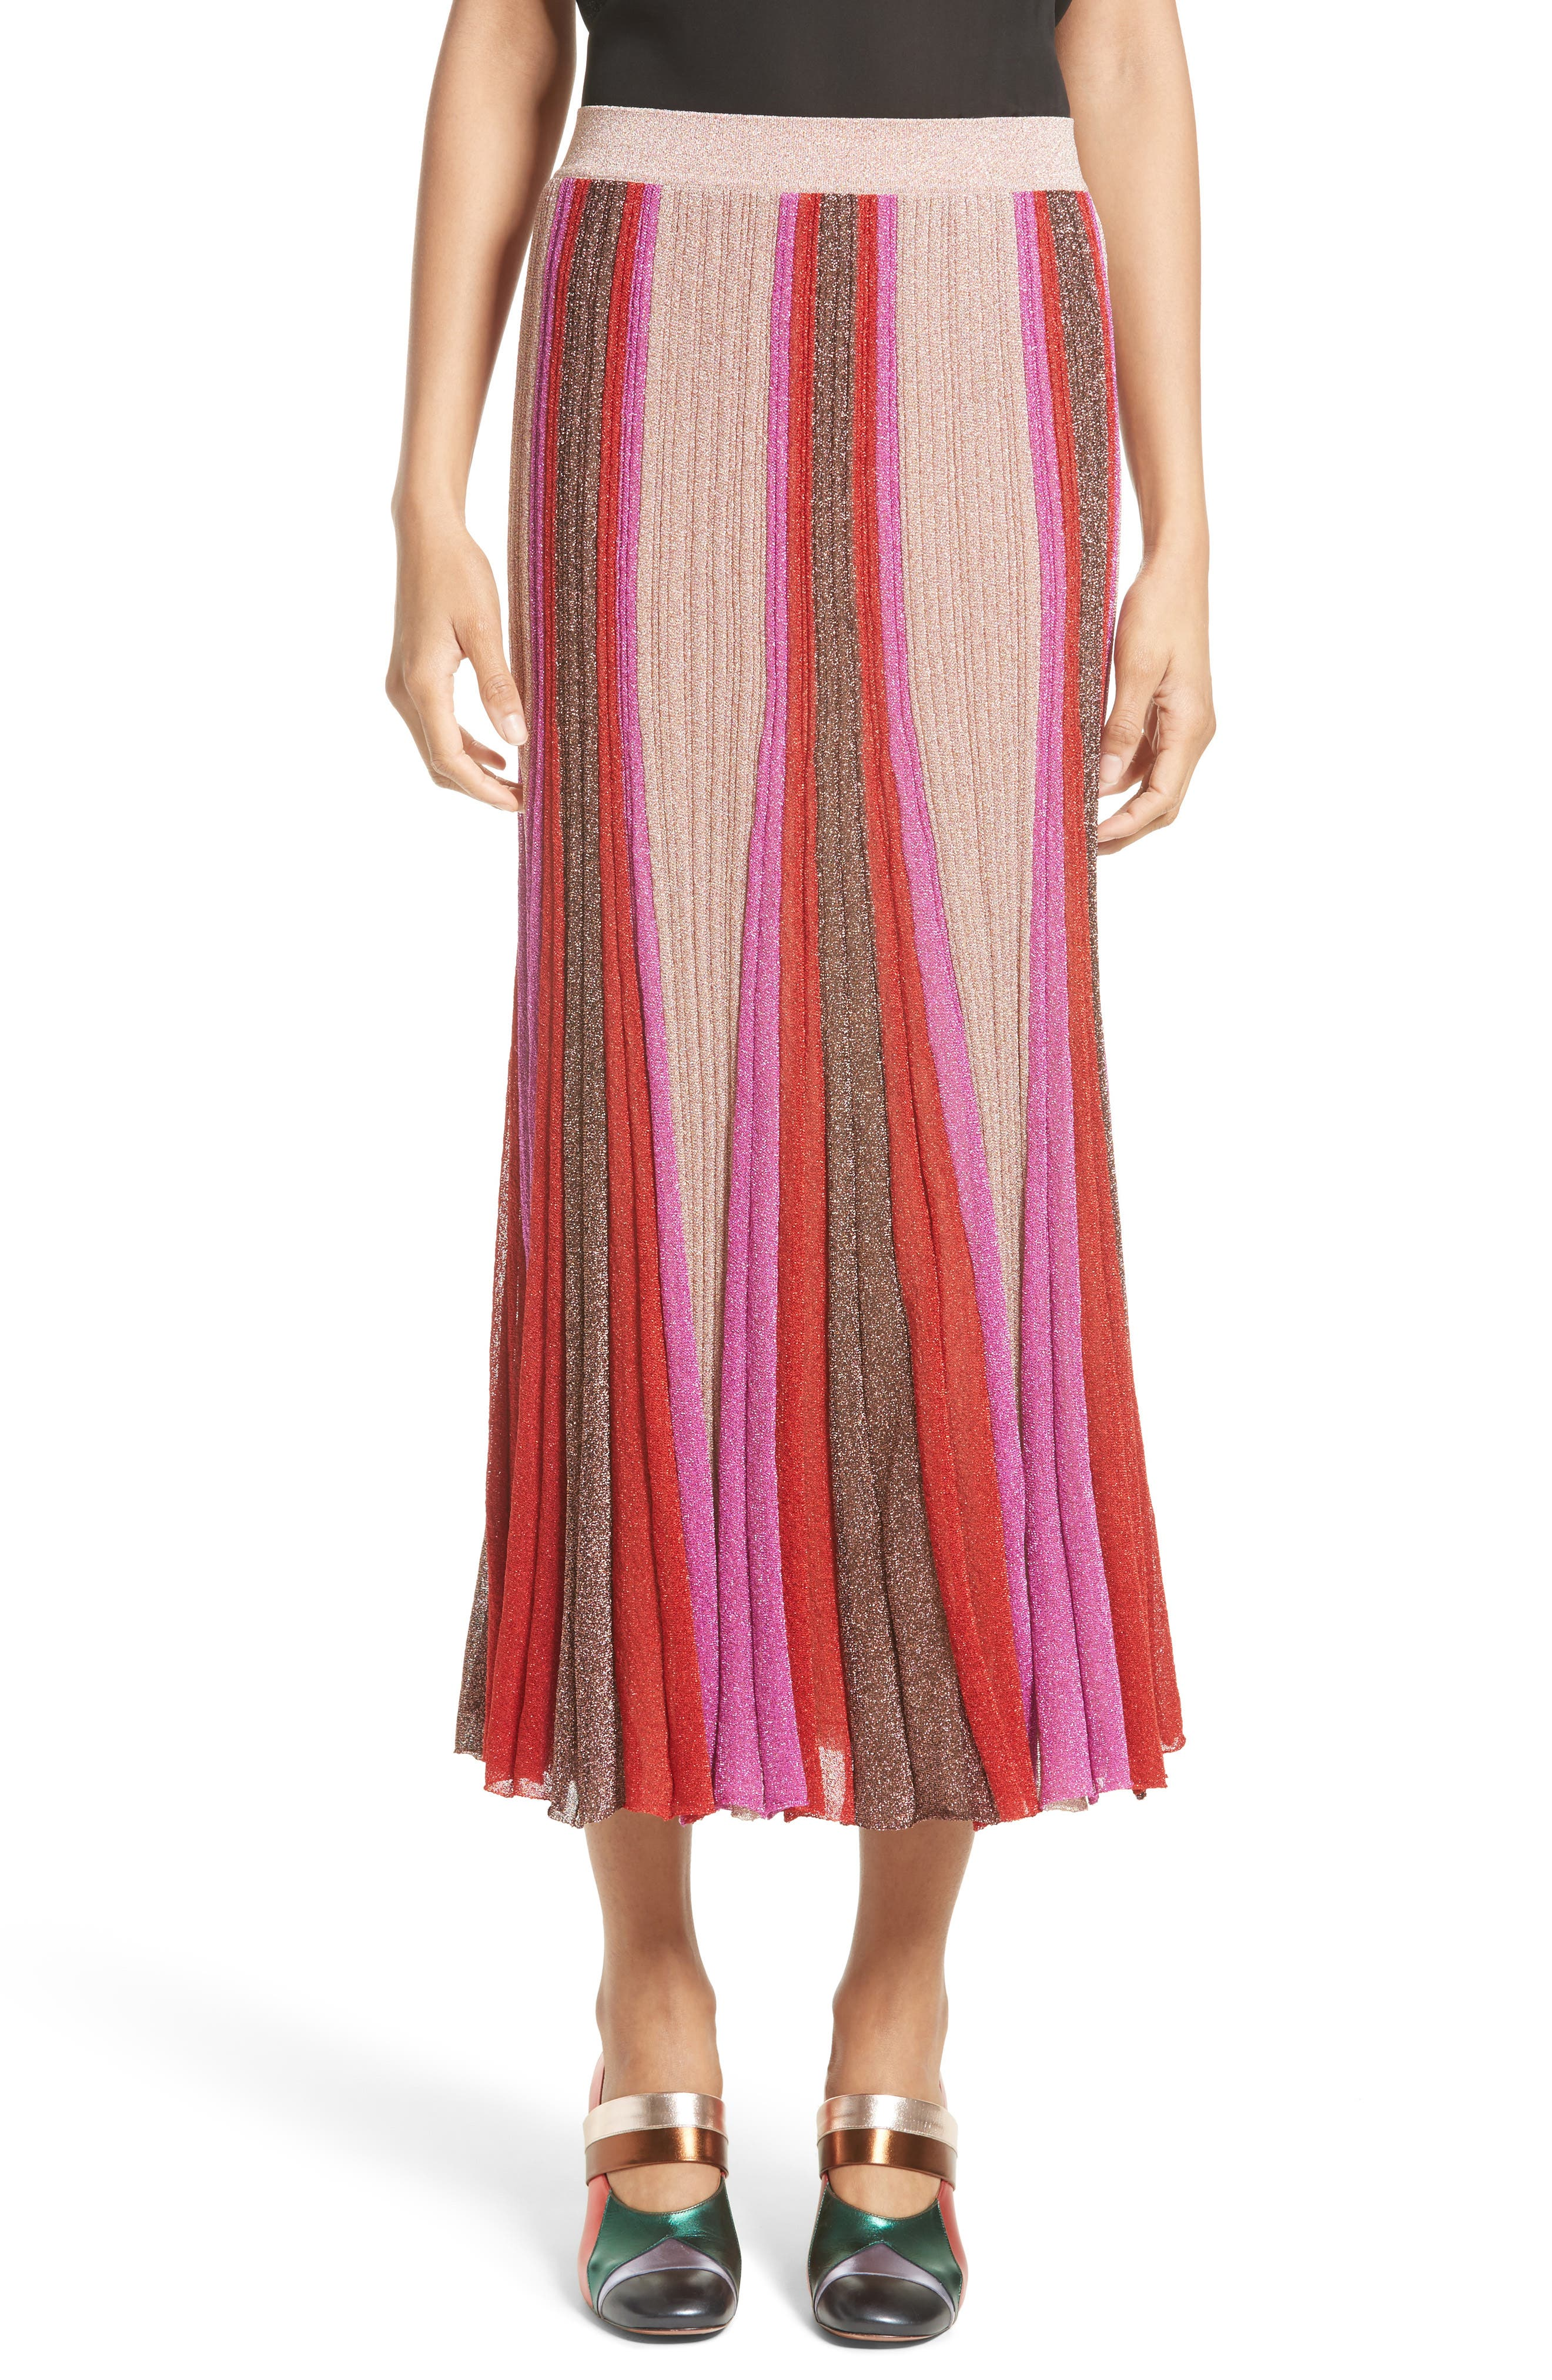 Missoni Metallic Knit Colorblock Pleated Skirt